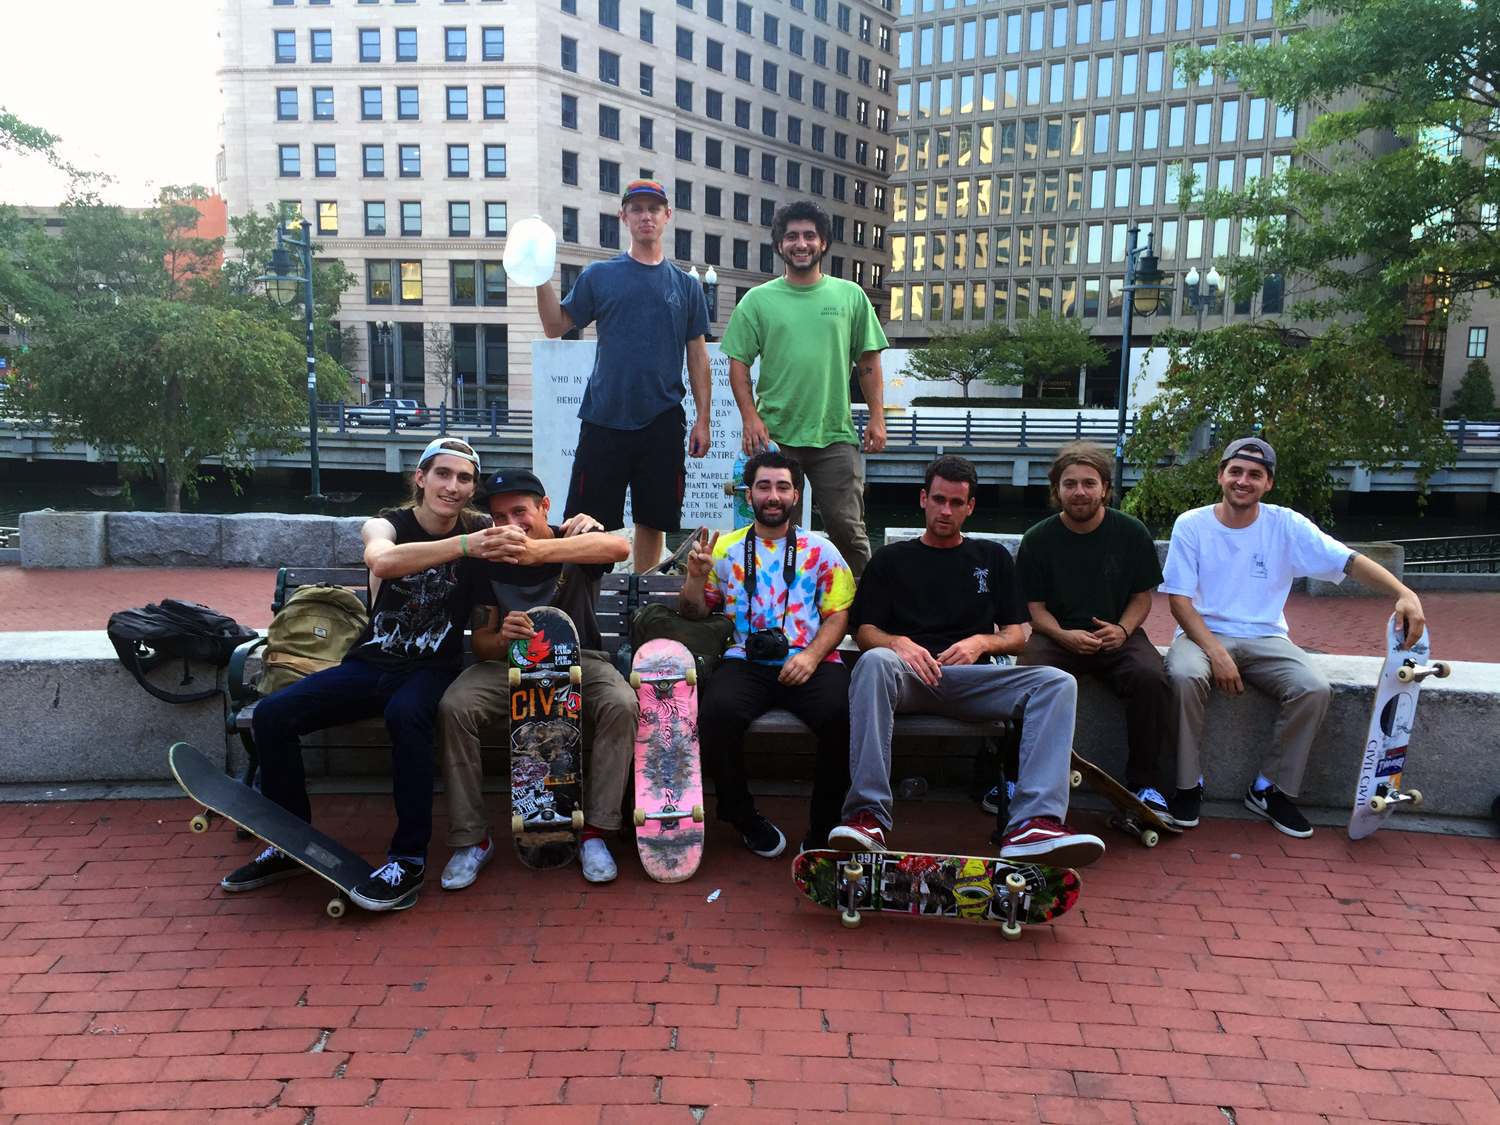 Monument Skate Crew Providence, RI    ©  Jud Burgess 2015    I was sitting at a park with Laurie watching this local skate crew making use of every corner and surface of a massive sculpted monument. Having been a skateboarder myself during the late 70s, connecting with these guys got my blood running again.